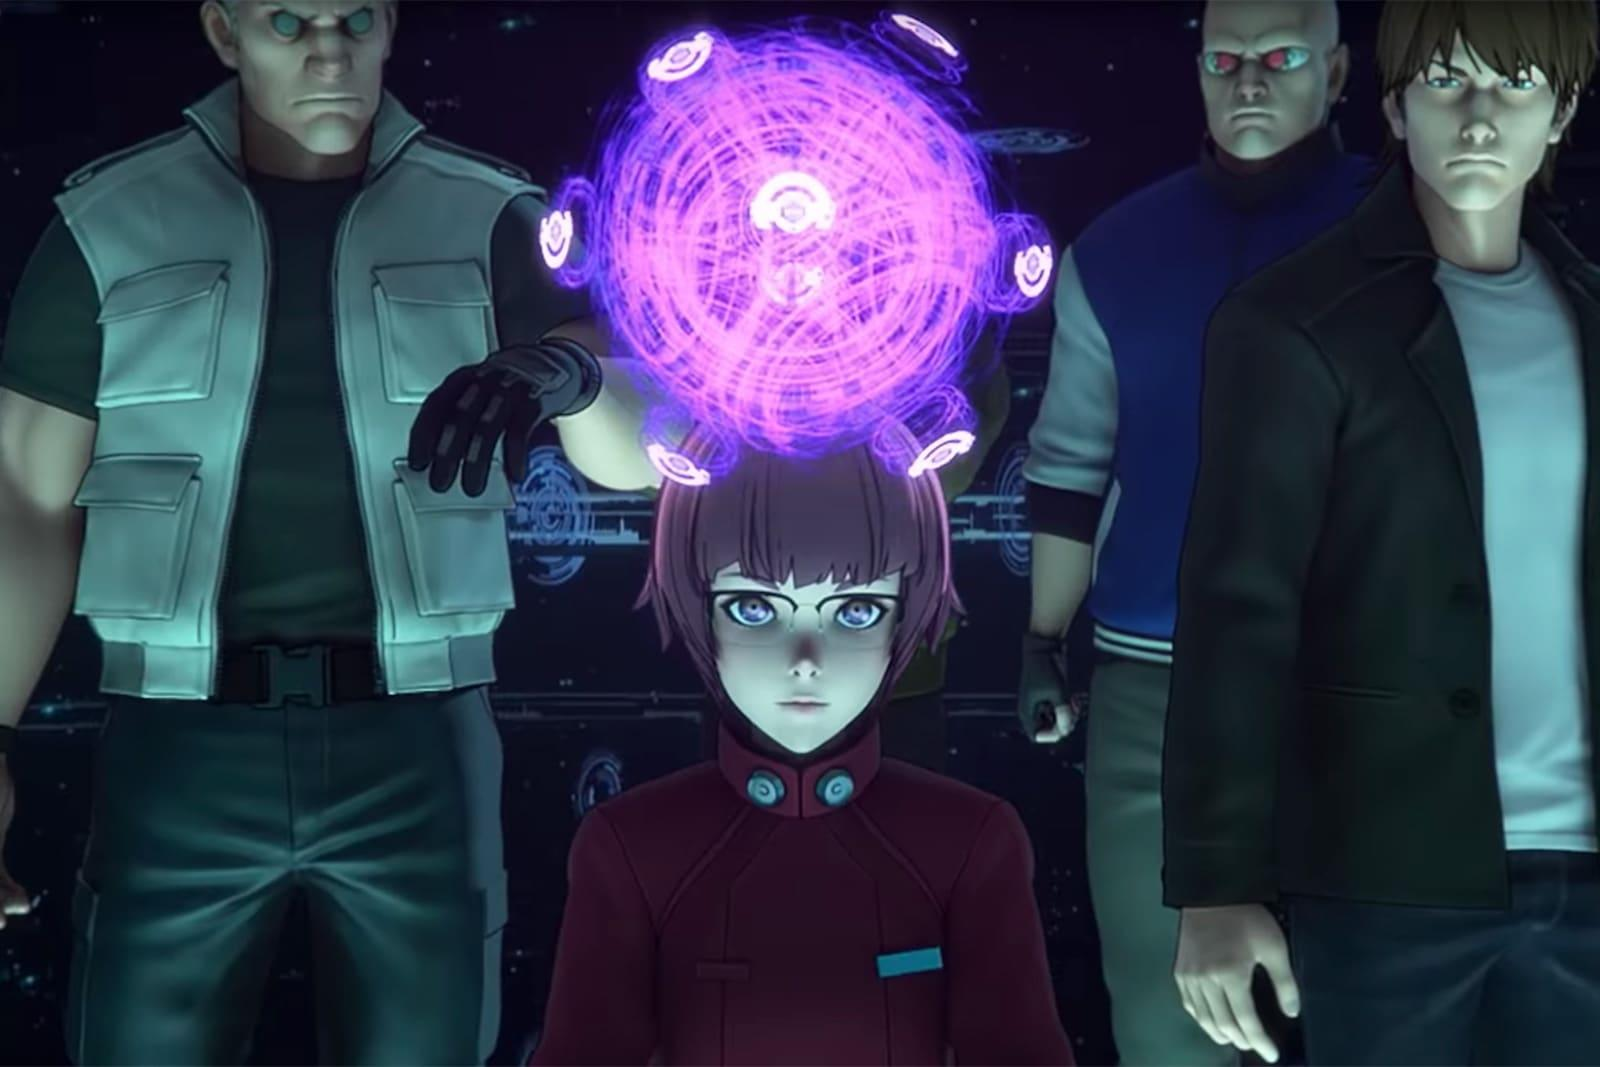 Netflix S Cg Ghost In The Shell Series Premieres April 23rd Engadget